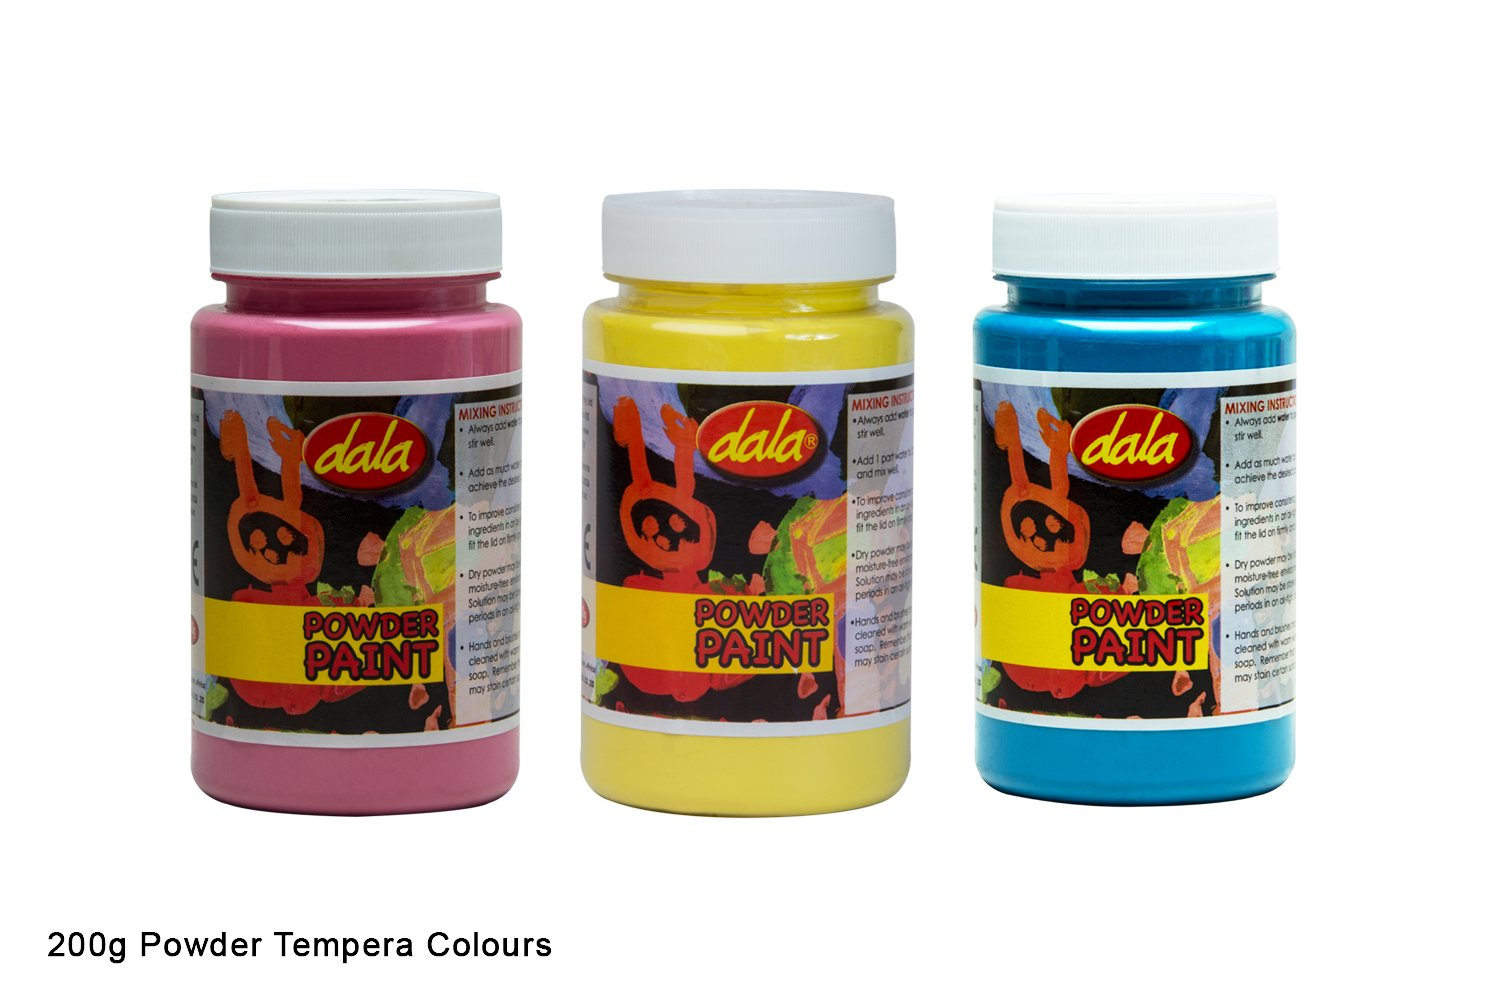 Powder Tempera - Standard Colours